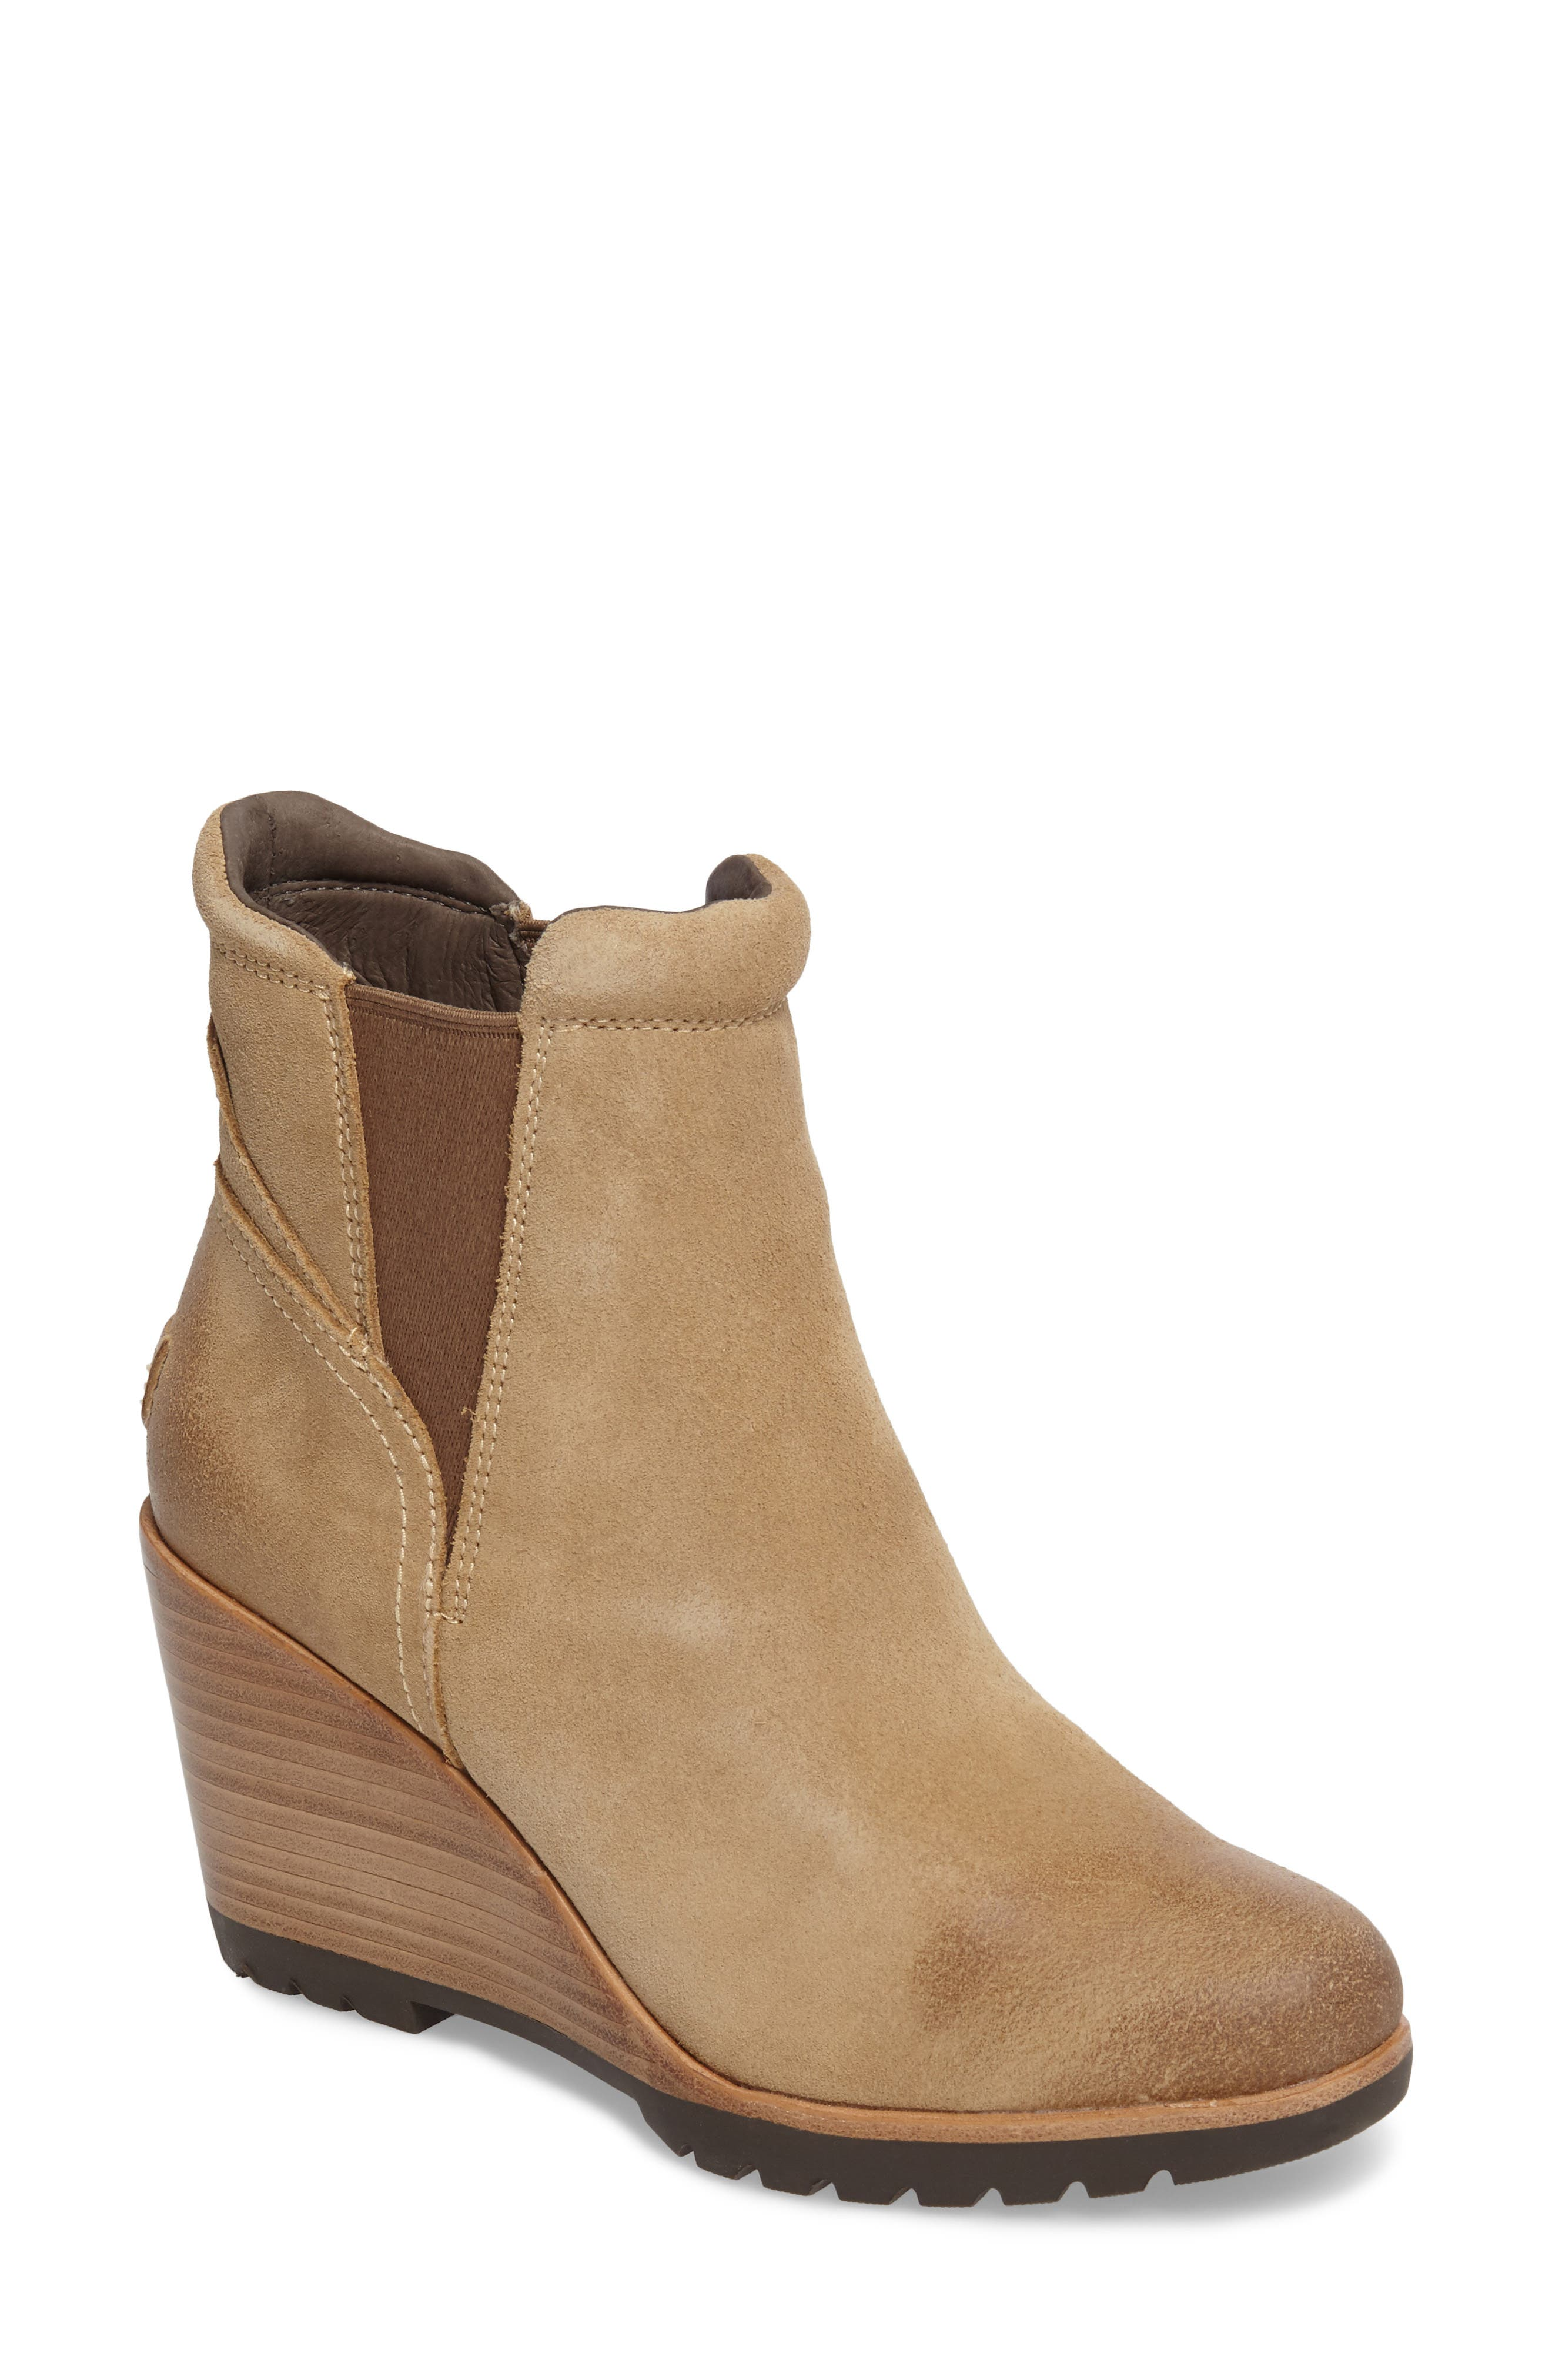 Alternate Image 1 Selected - SOREL After Hours Chelsea Boot (Women)